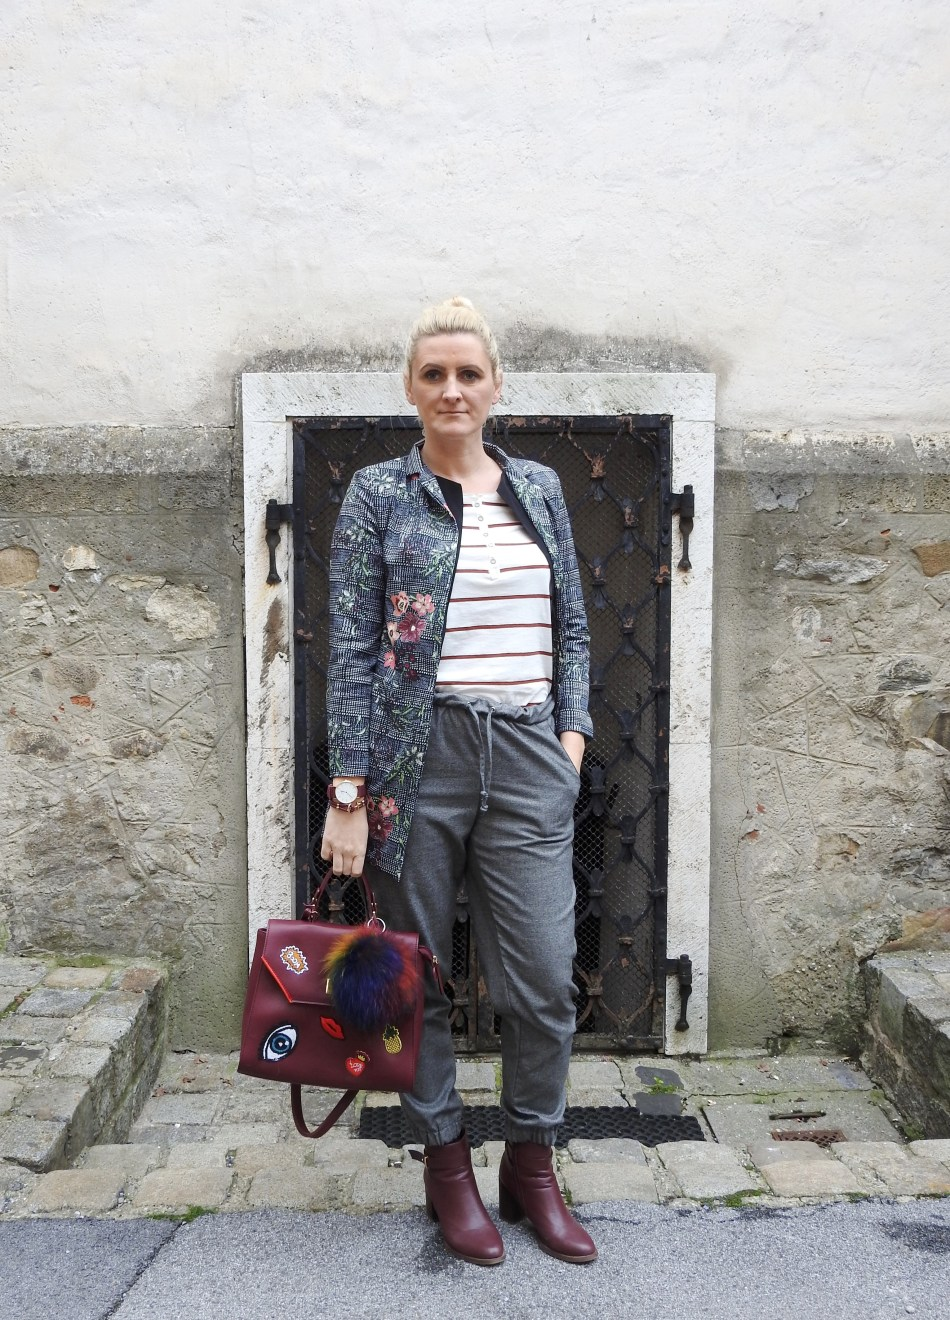 Grey-winered-boots-bag-patches-Blazer-Floralprint-striped-shirt-carrieslifestyle-Tamara-Prutsch